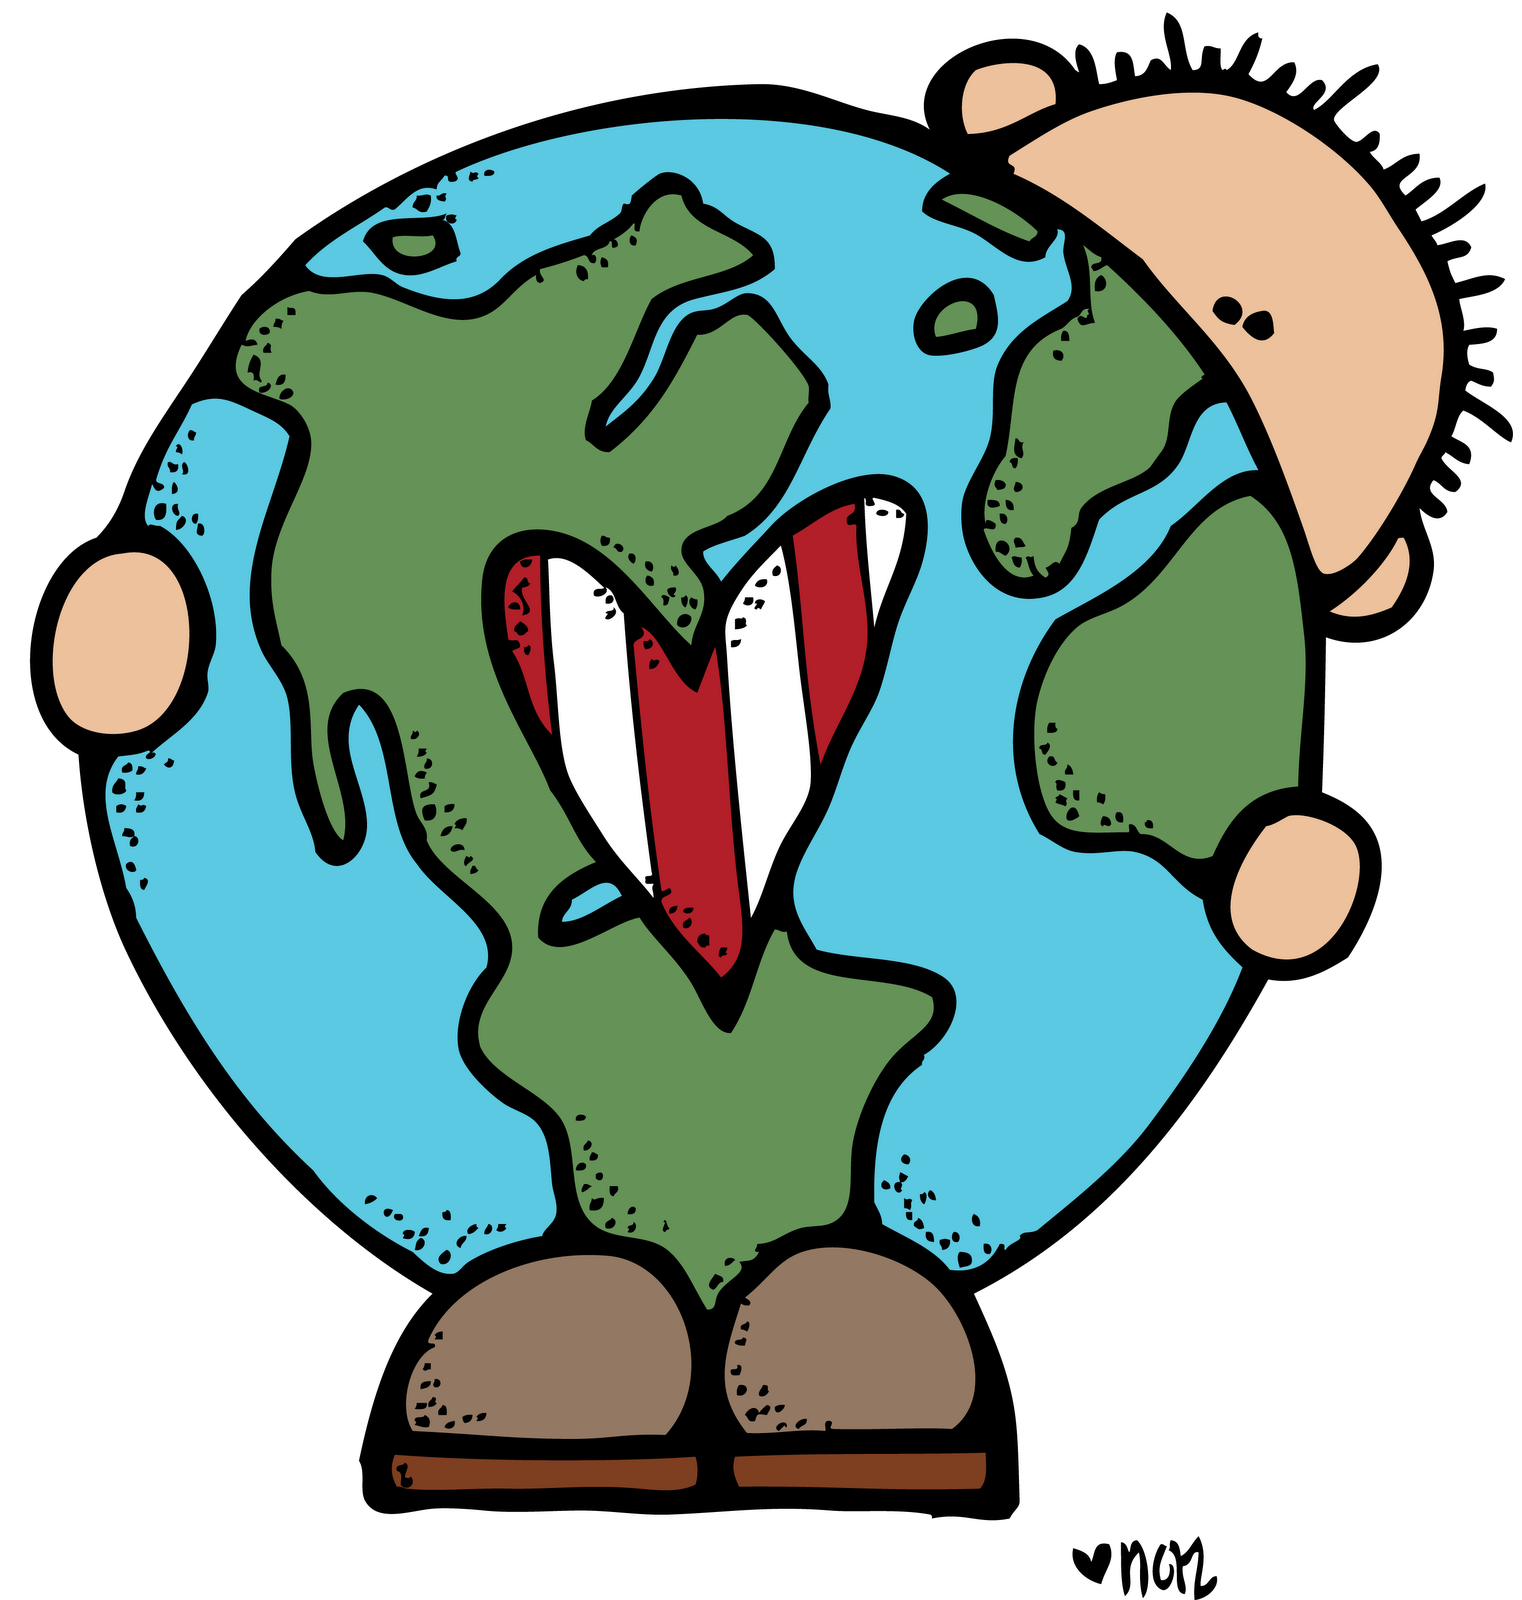 Pajamas clipart melonheadz. Earth day images